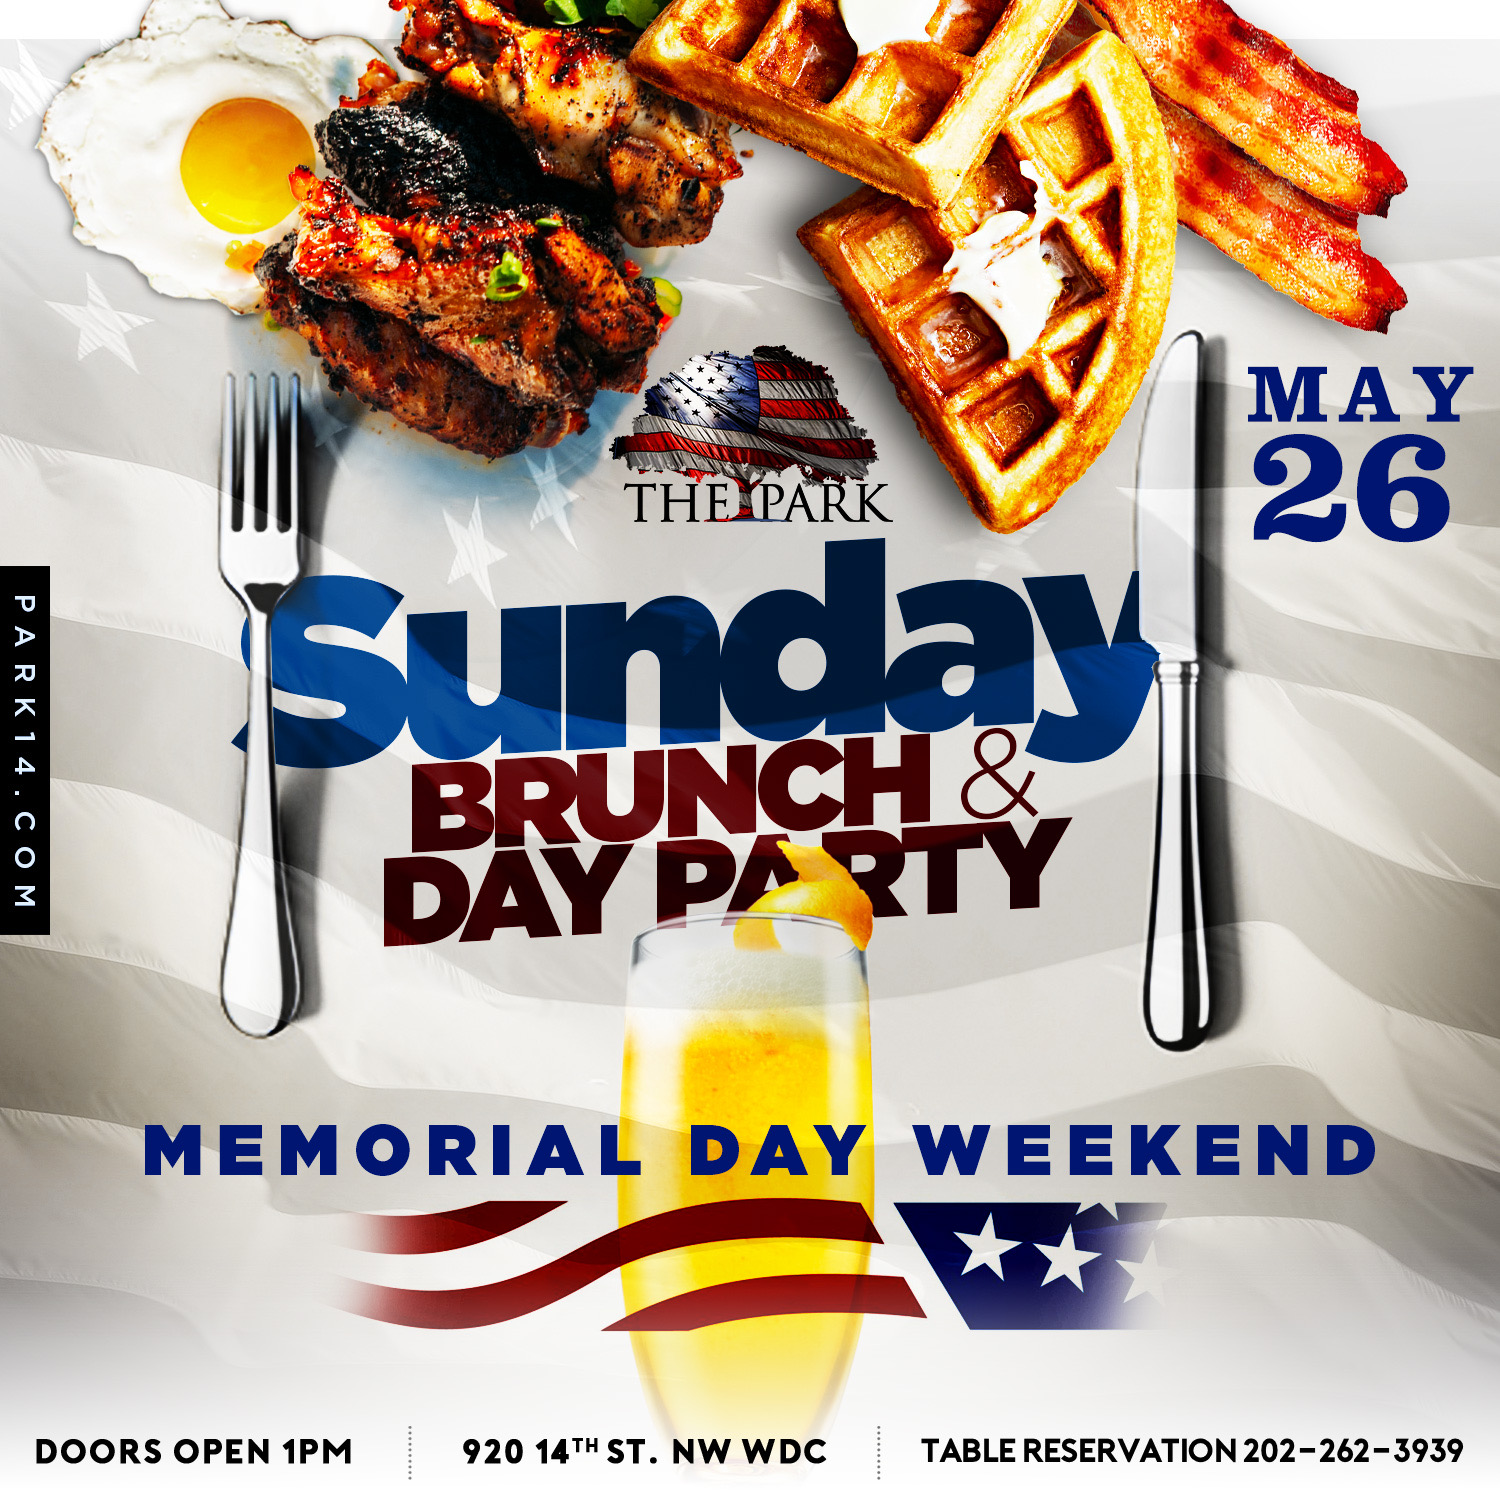 SaturdayBrunch&DayParty-V3-1.jpeg